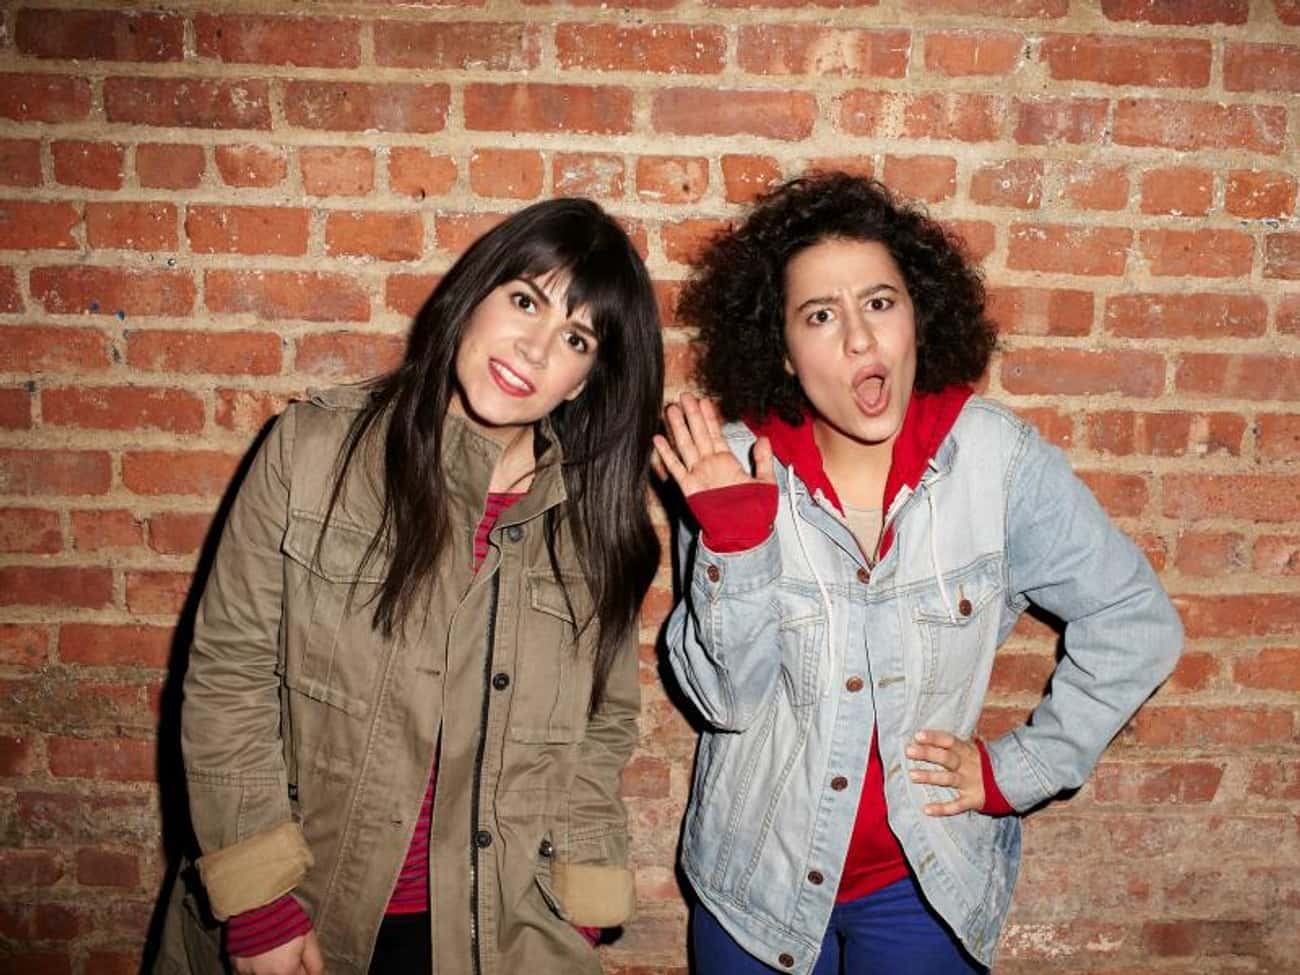 Broad City is listed (or ranked) 2 on the list What to Watch If You Love Friday